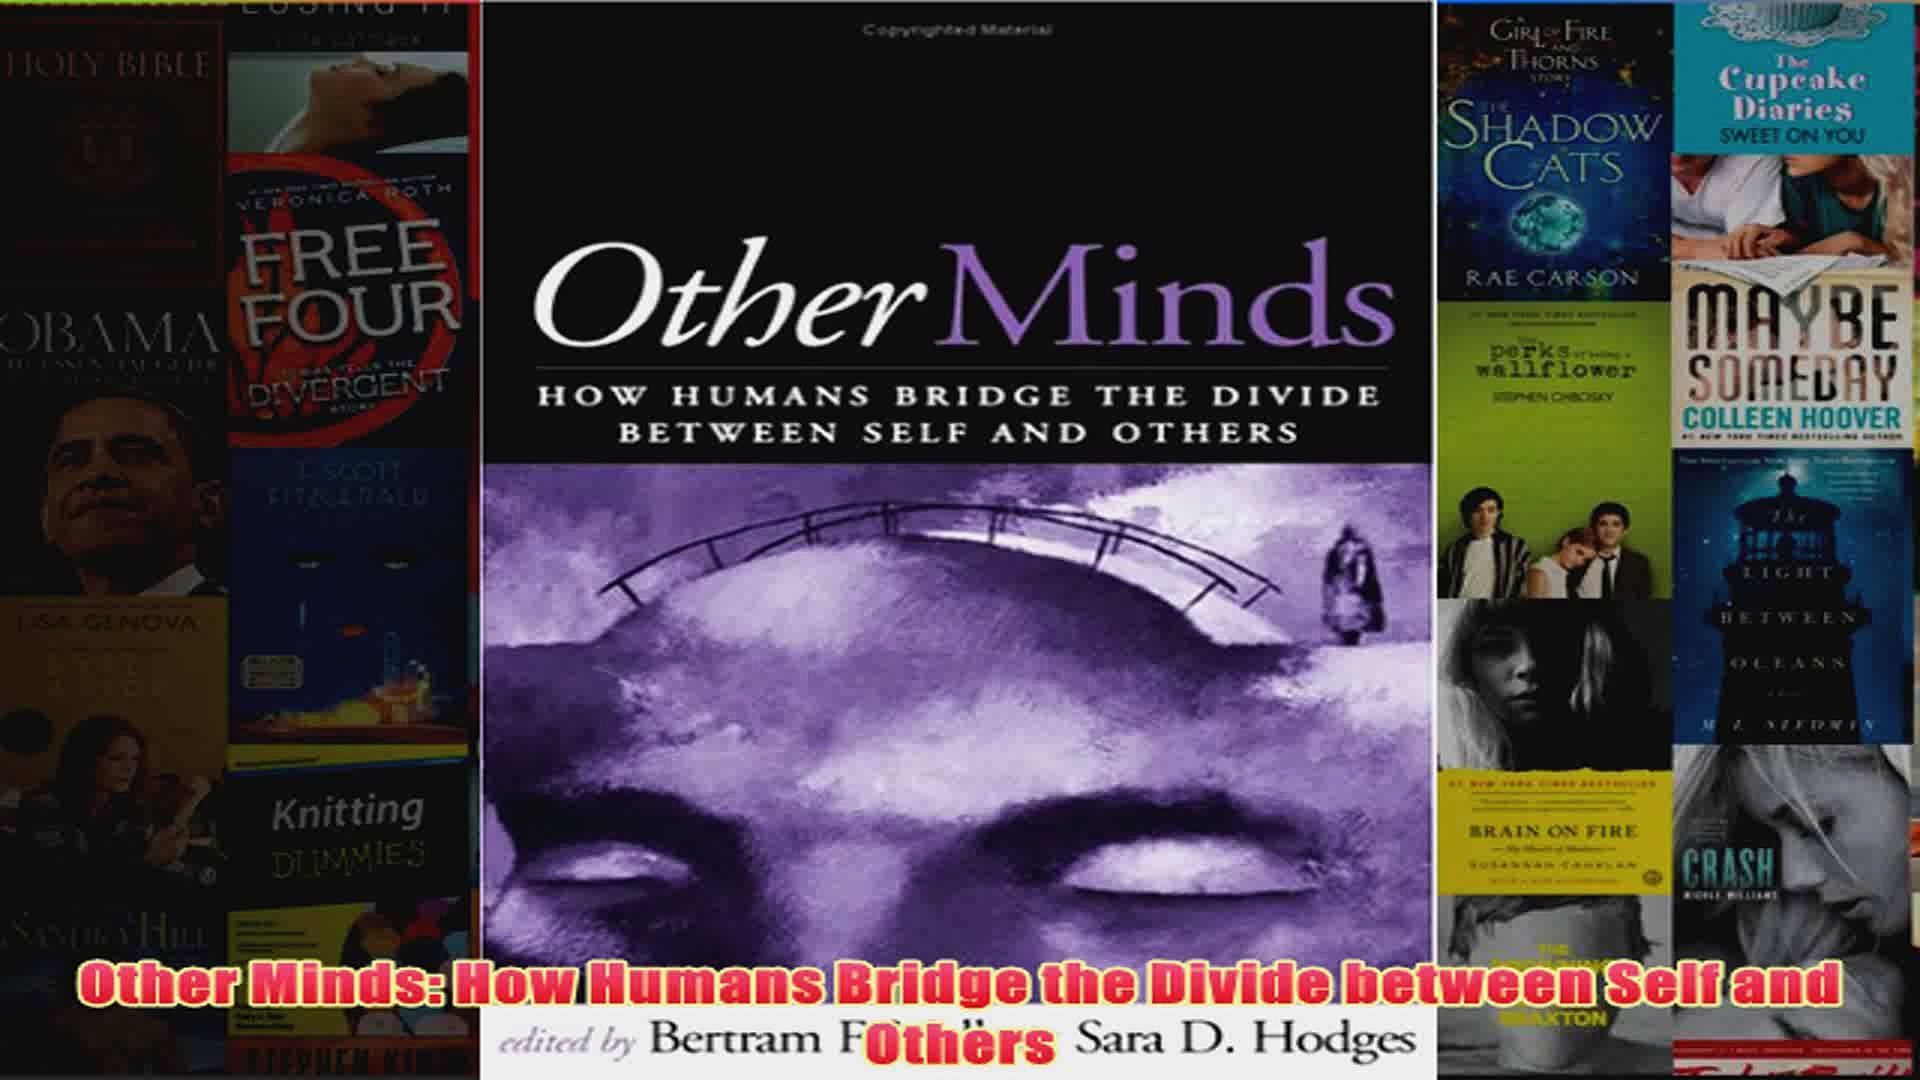 Other Minds How Humans Bridge the Divide between Self and Others